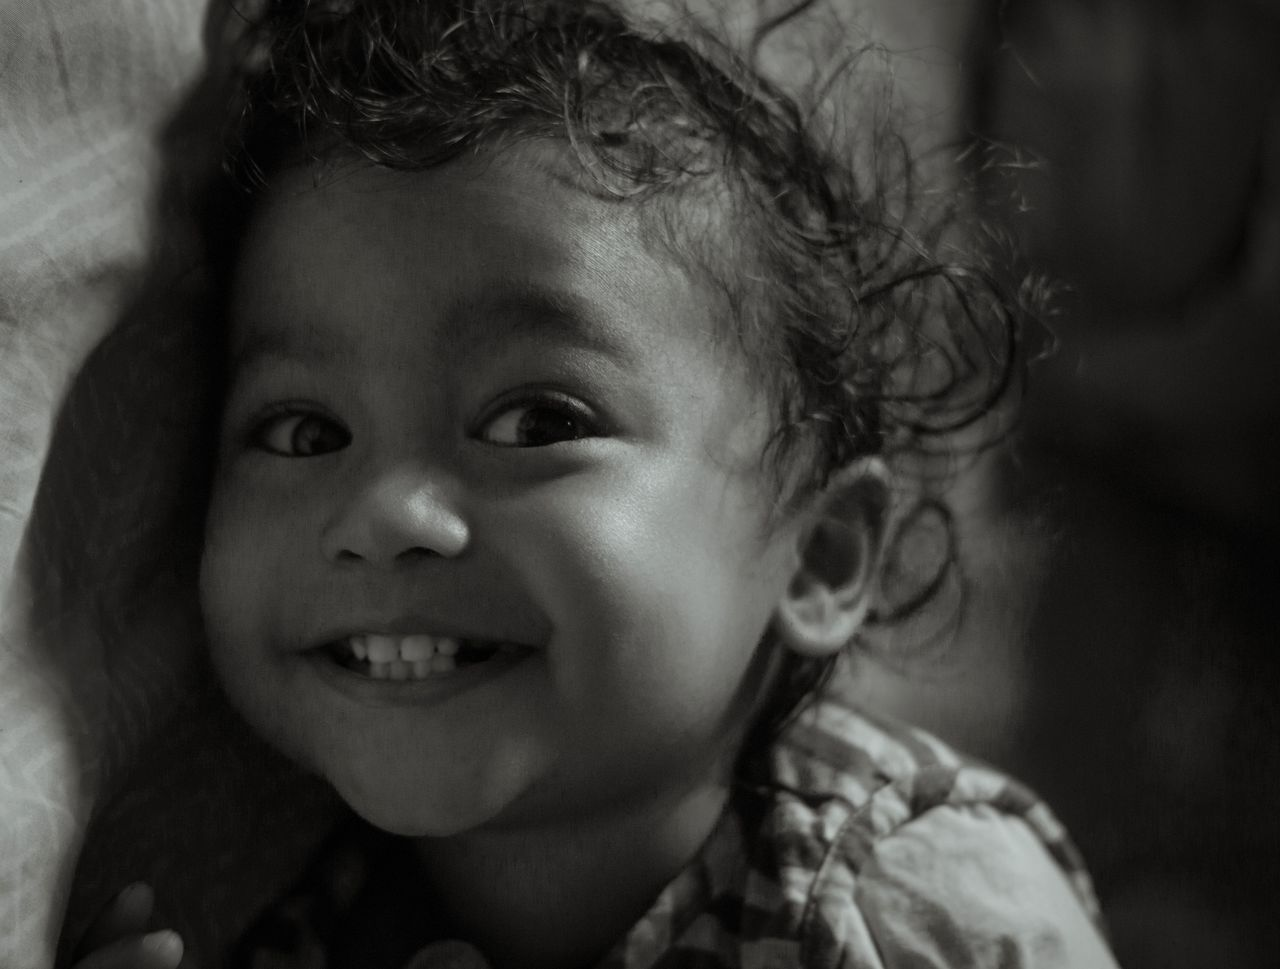 Headshot Indoors  Looking At Camera Cute Close-up Happiness People Smiling Cheerful Day Children Only Child One Person Innocence Portrait Baby Childhood Fine Art Photography Babies Only Blackandwhite EyeEm Best Shots Kids Being Kids Hairstyle Kid Indian